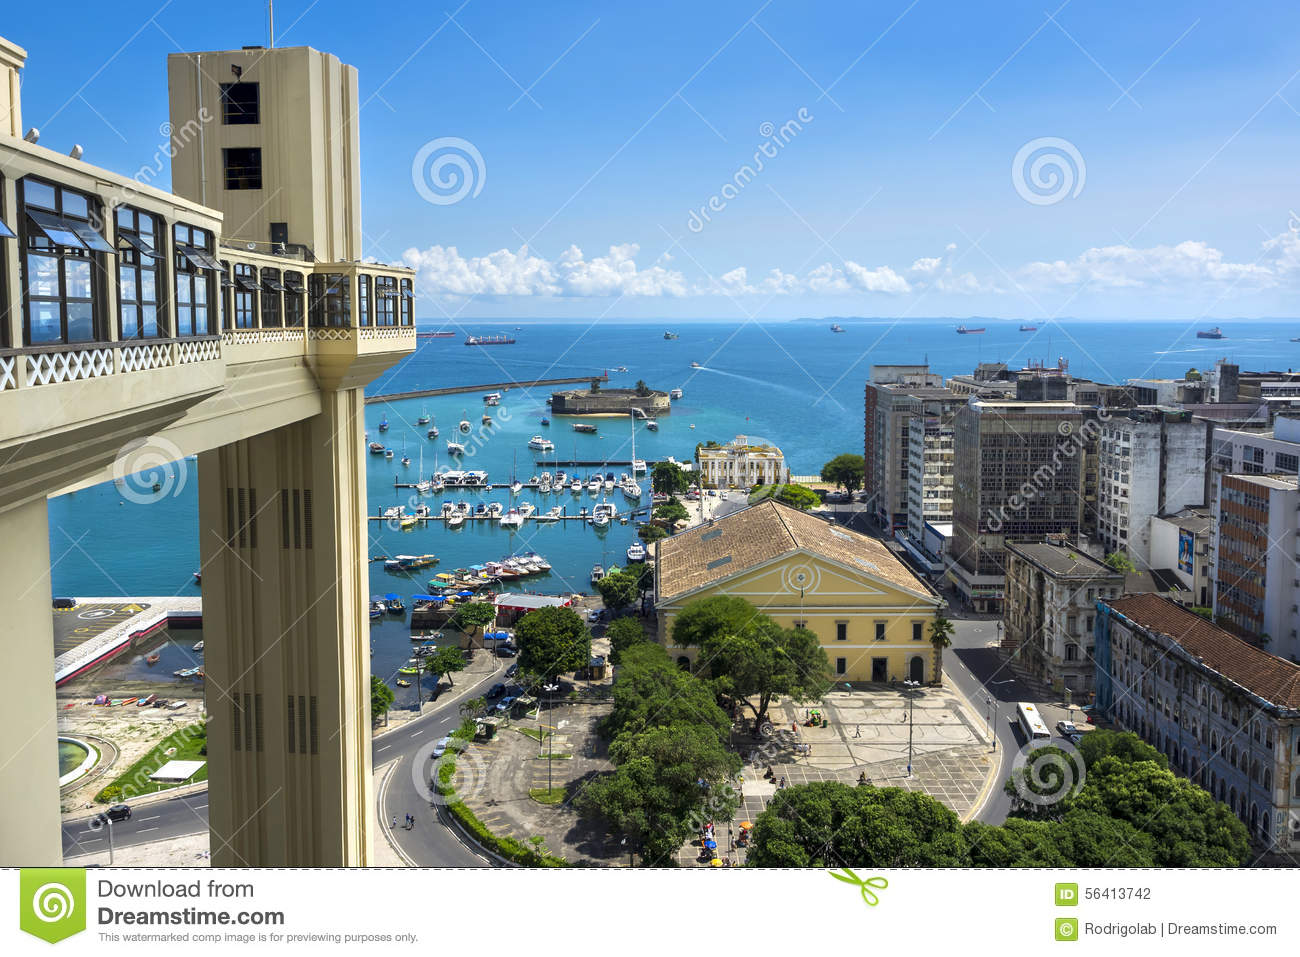 Lacerda Elevator And All Saints Bay In Salvador, Bahia, Brazil.